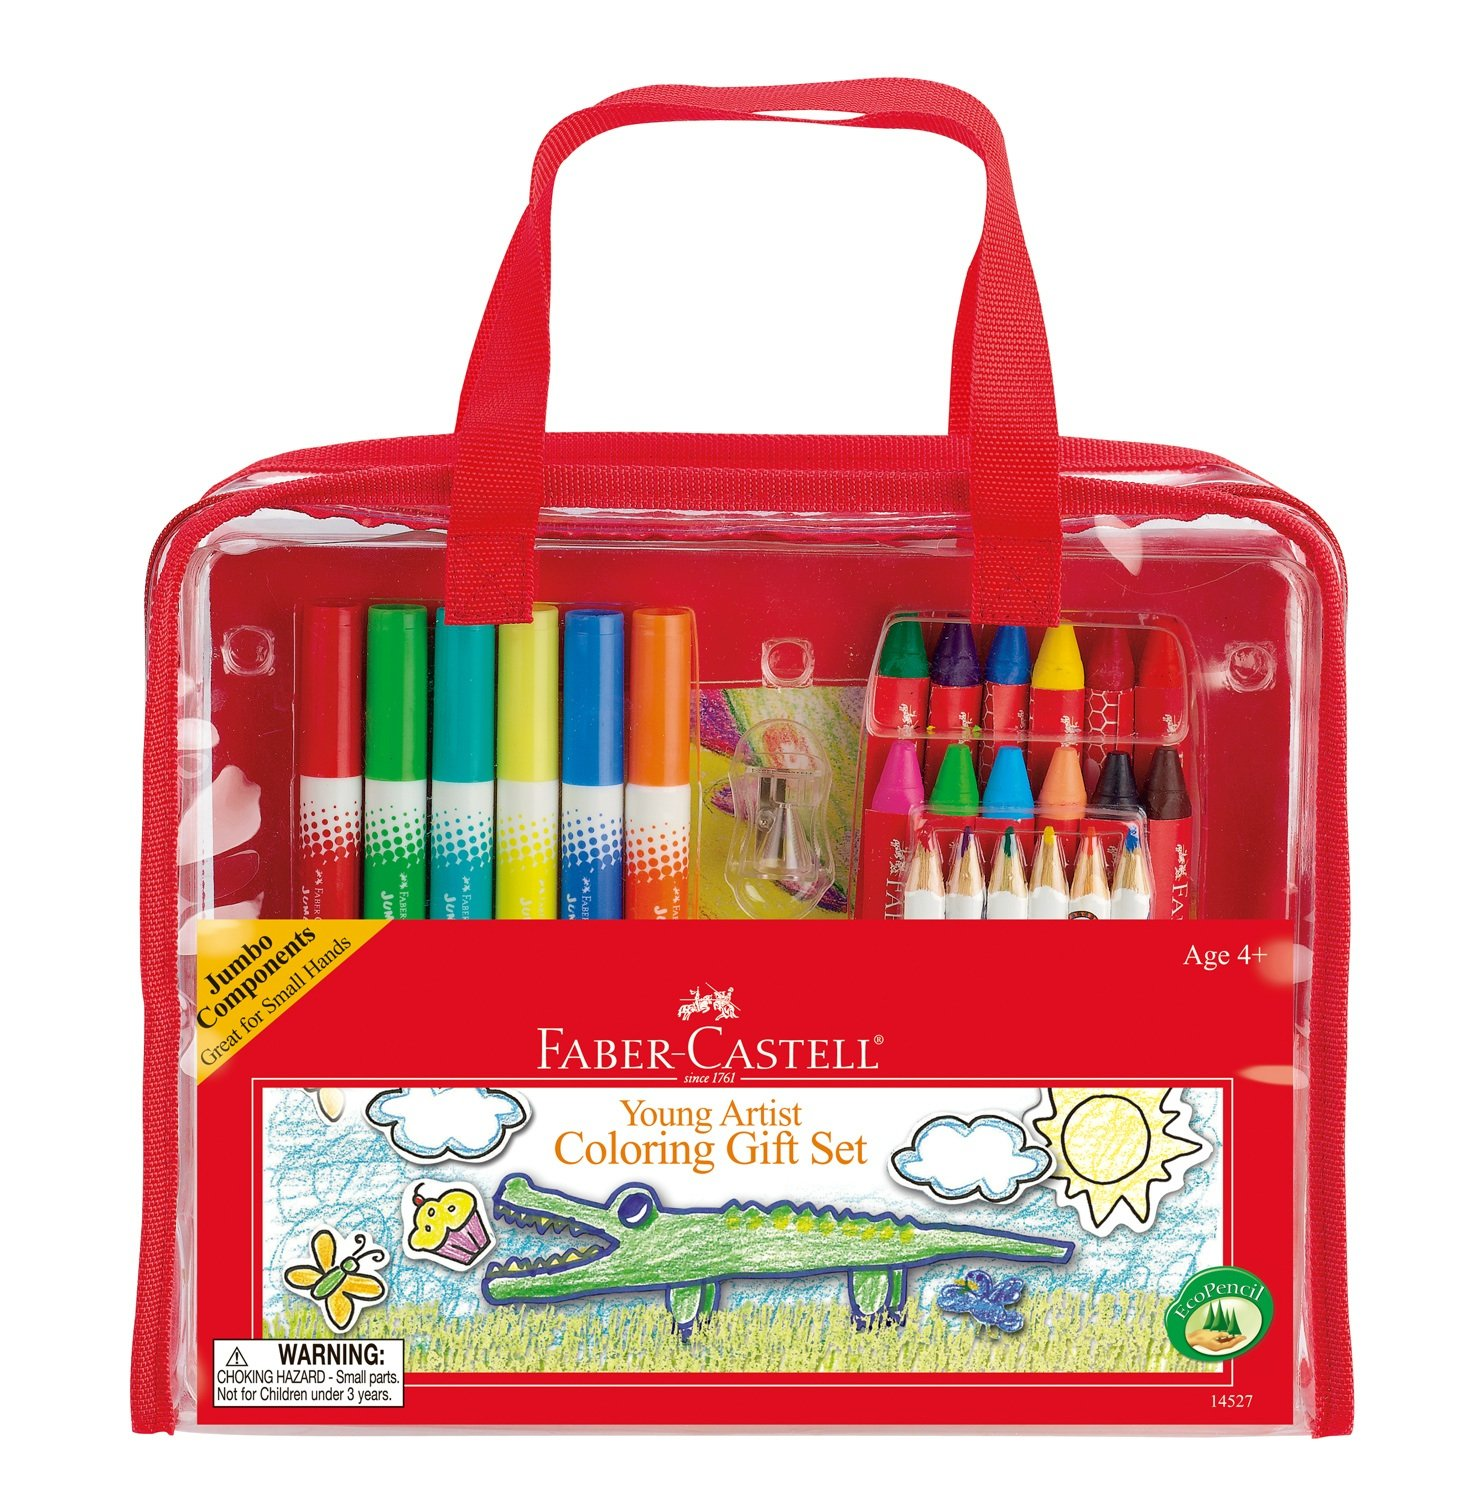 Faber castell gift set india gift ftempo for Arts and crafts sets for kids